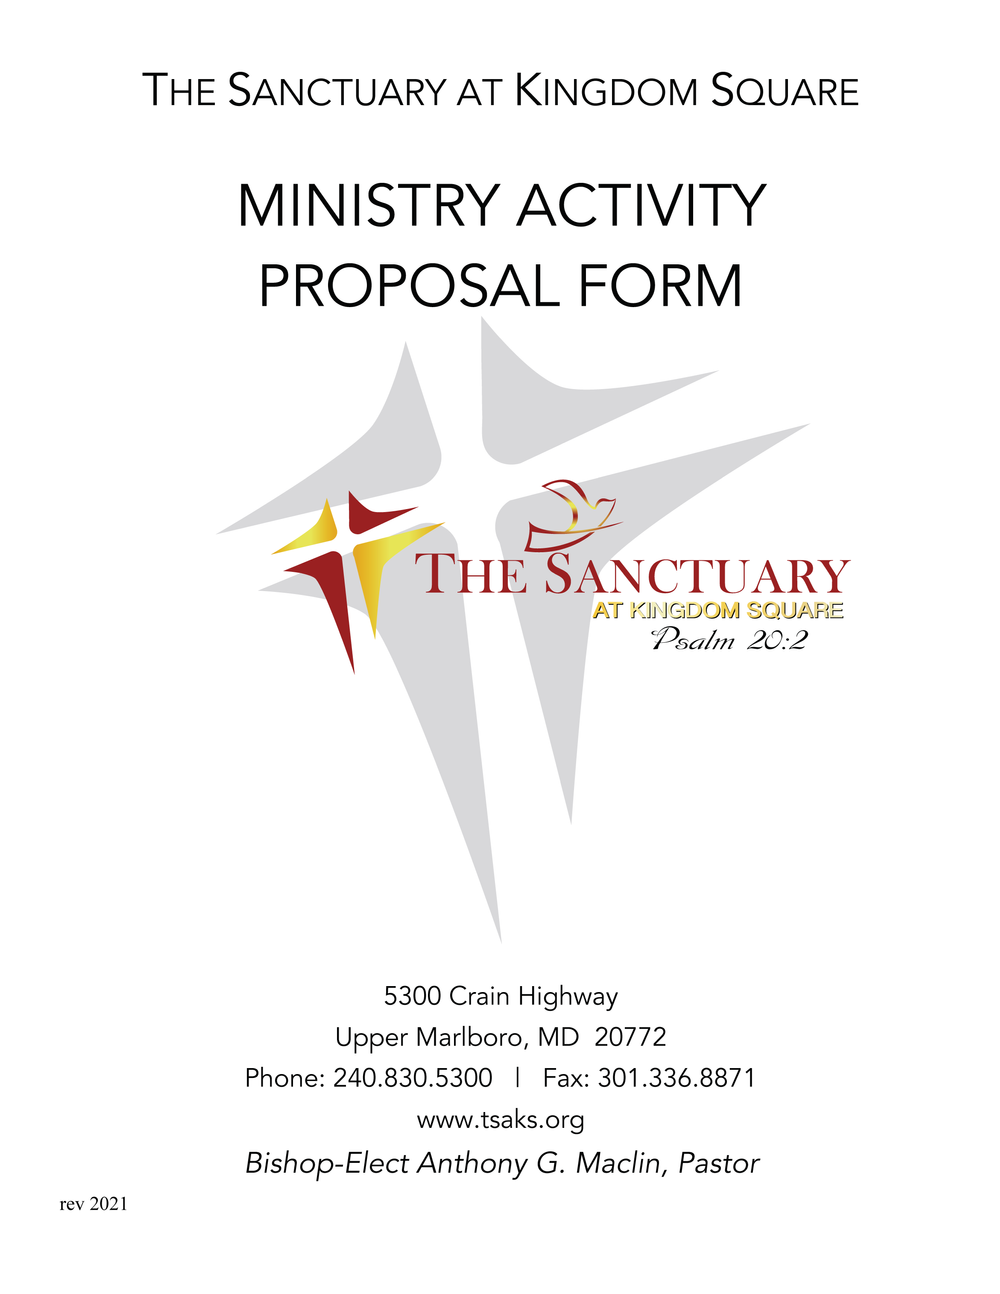 Ministry Activity Proposal Form rvsd.png